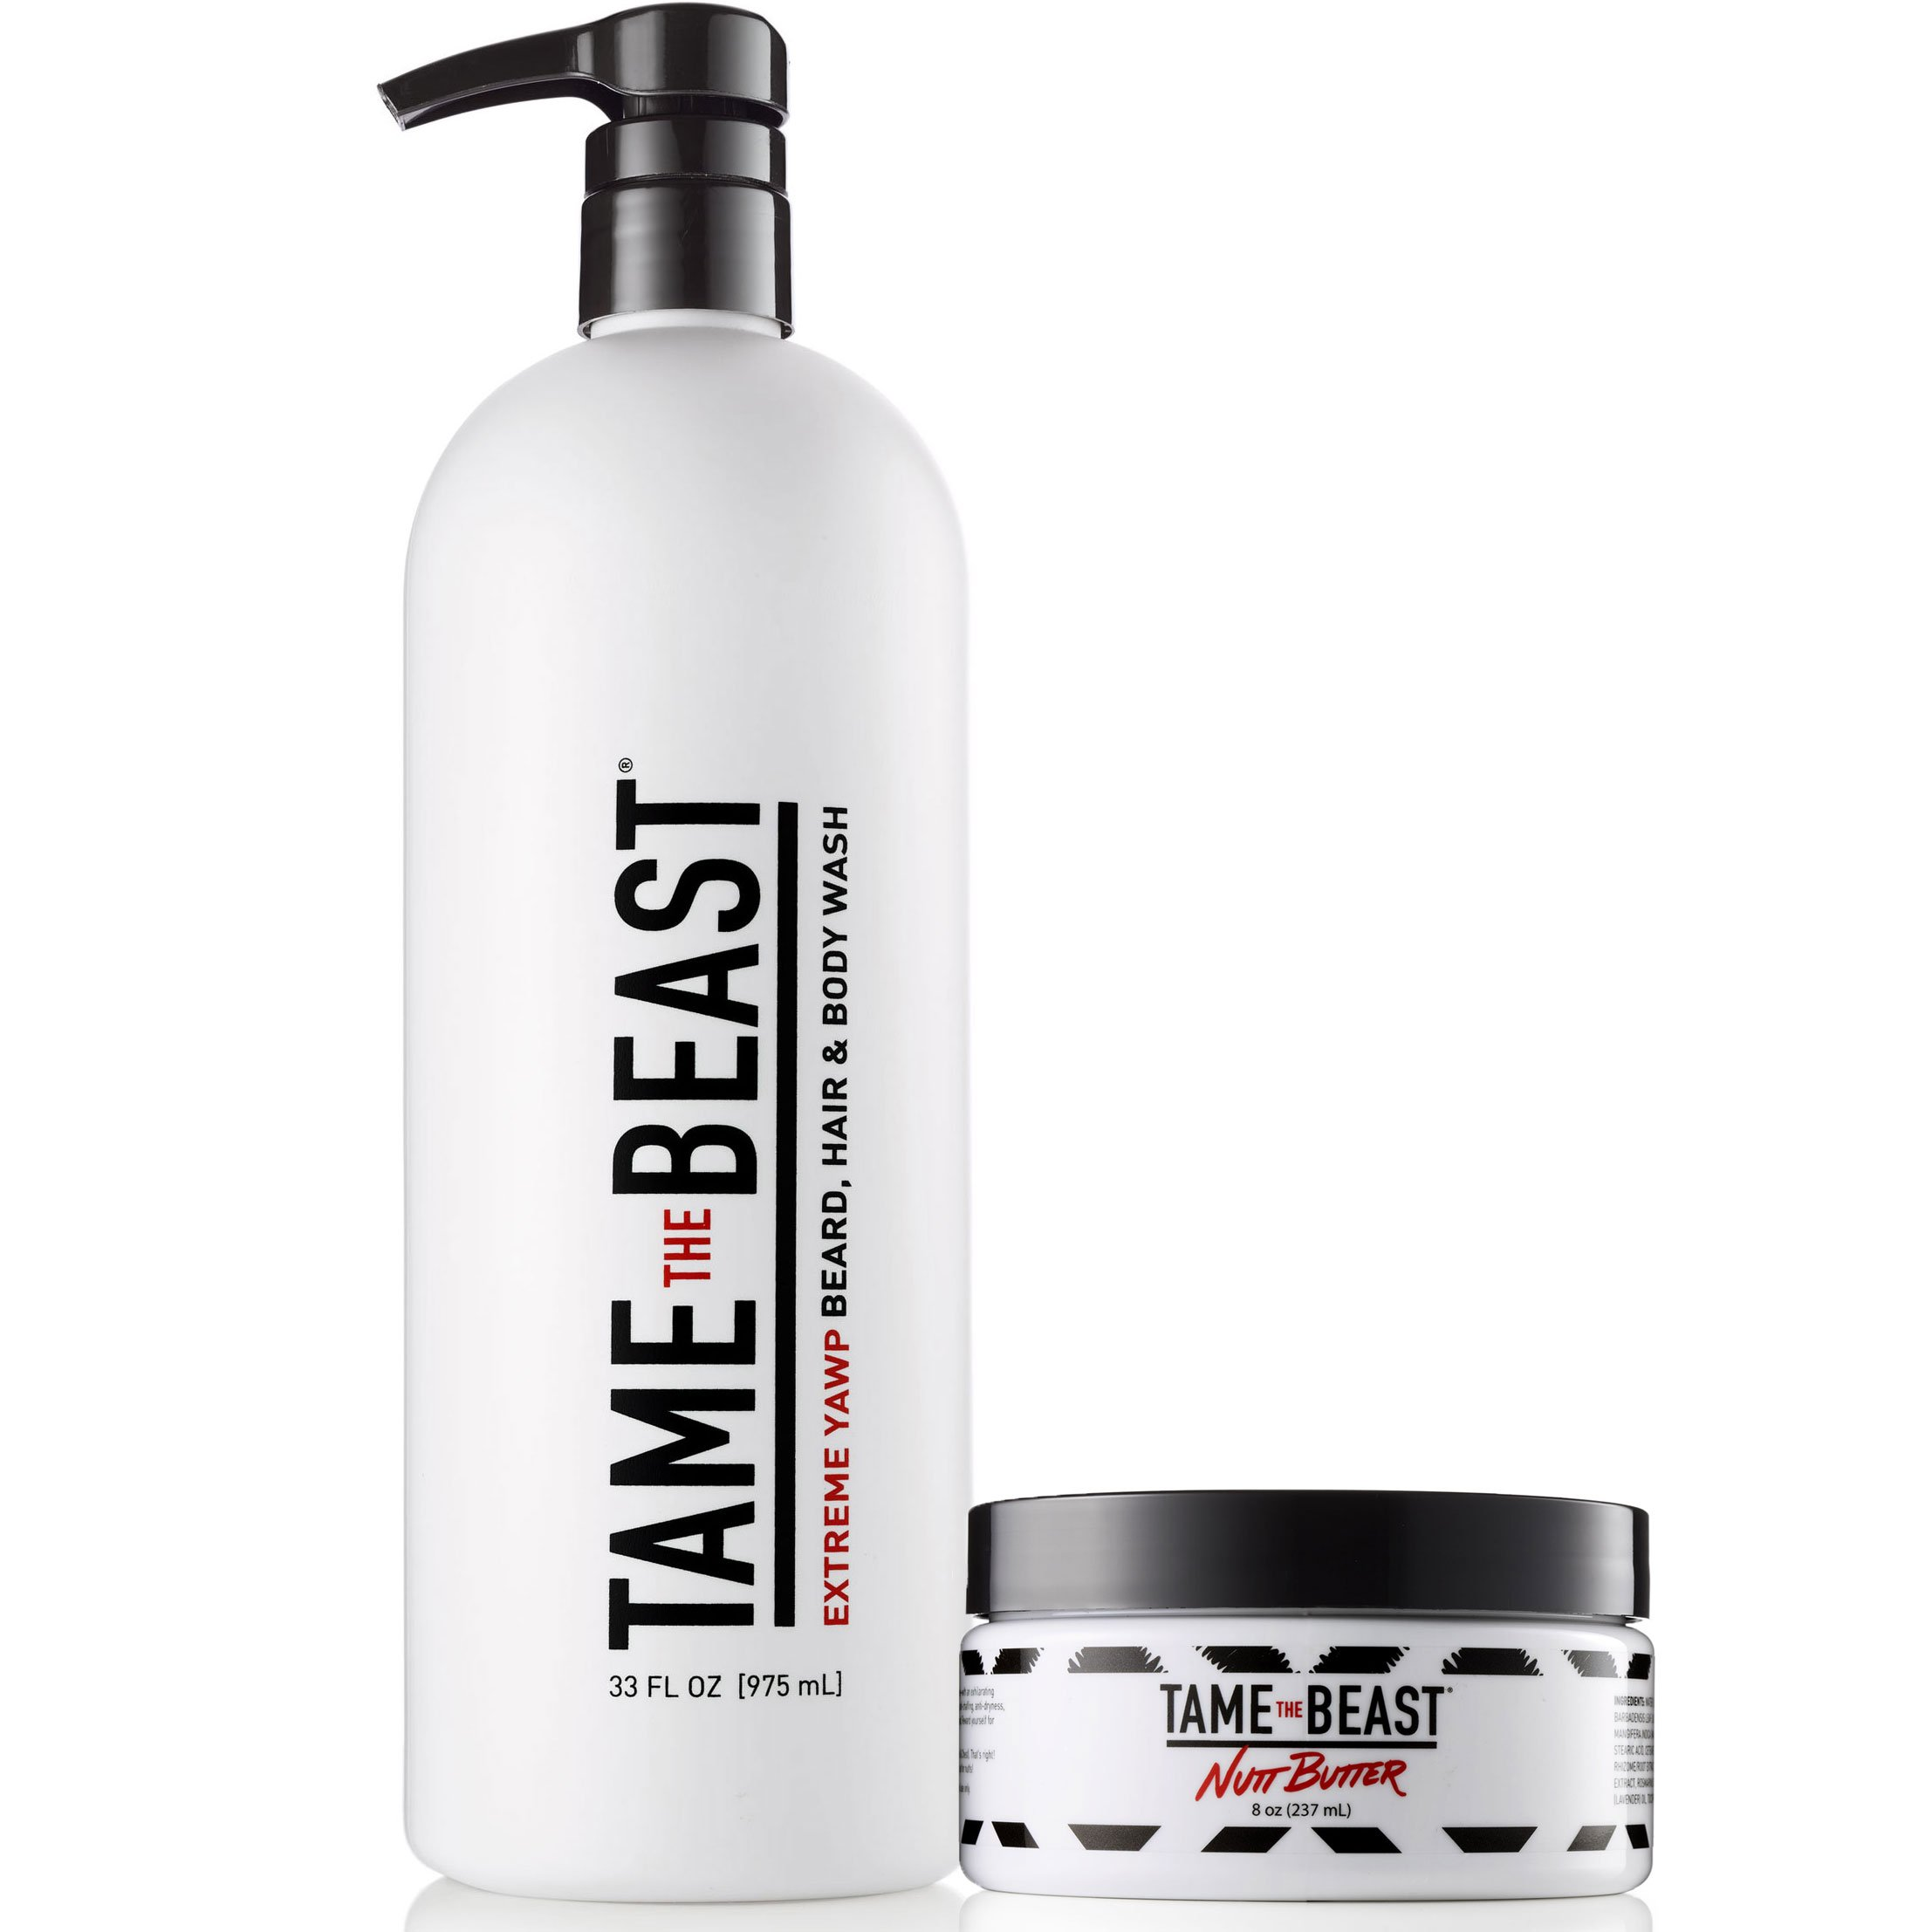 BBC Mens Grooming Set - Body Wash & Lotion for Balls Back & Chest - Extreme Yawp All-in-One Wash & Nutt Butter Skin Tingle Cream - Best Gift Set for Birthdays Father's Day Holidays by TAME the BEAST